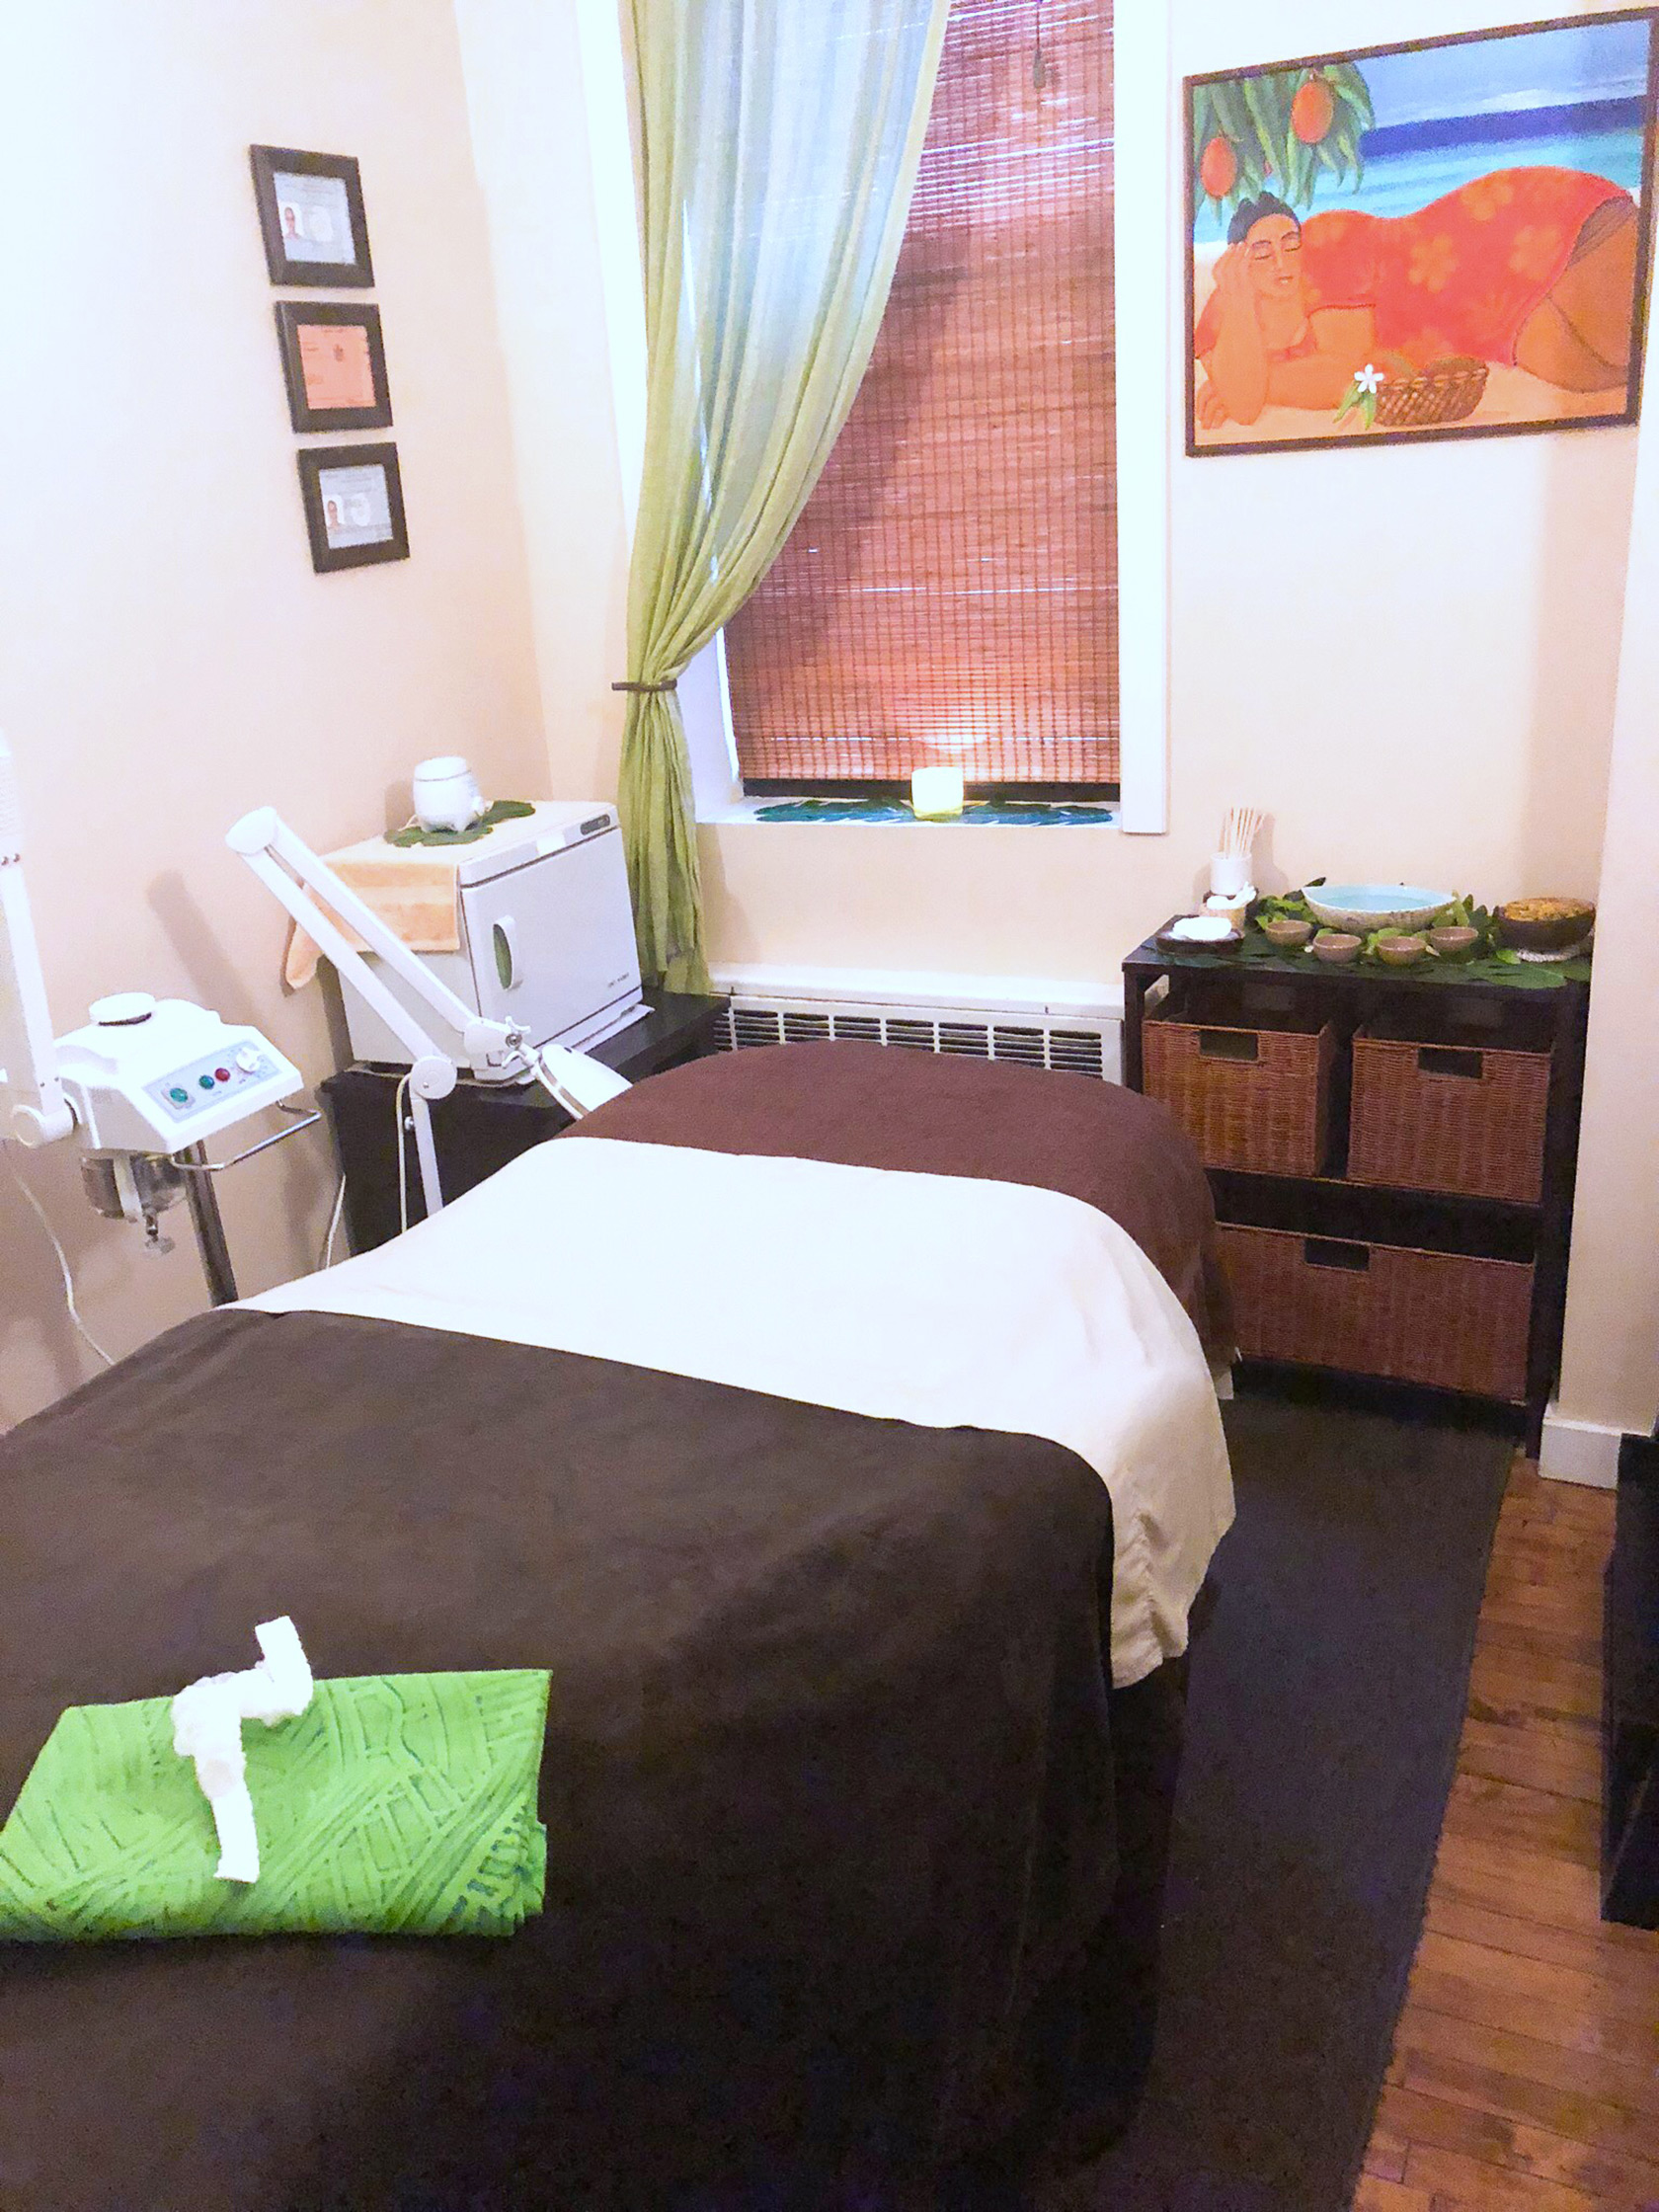 Pacific Touch NYC Treatment Room